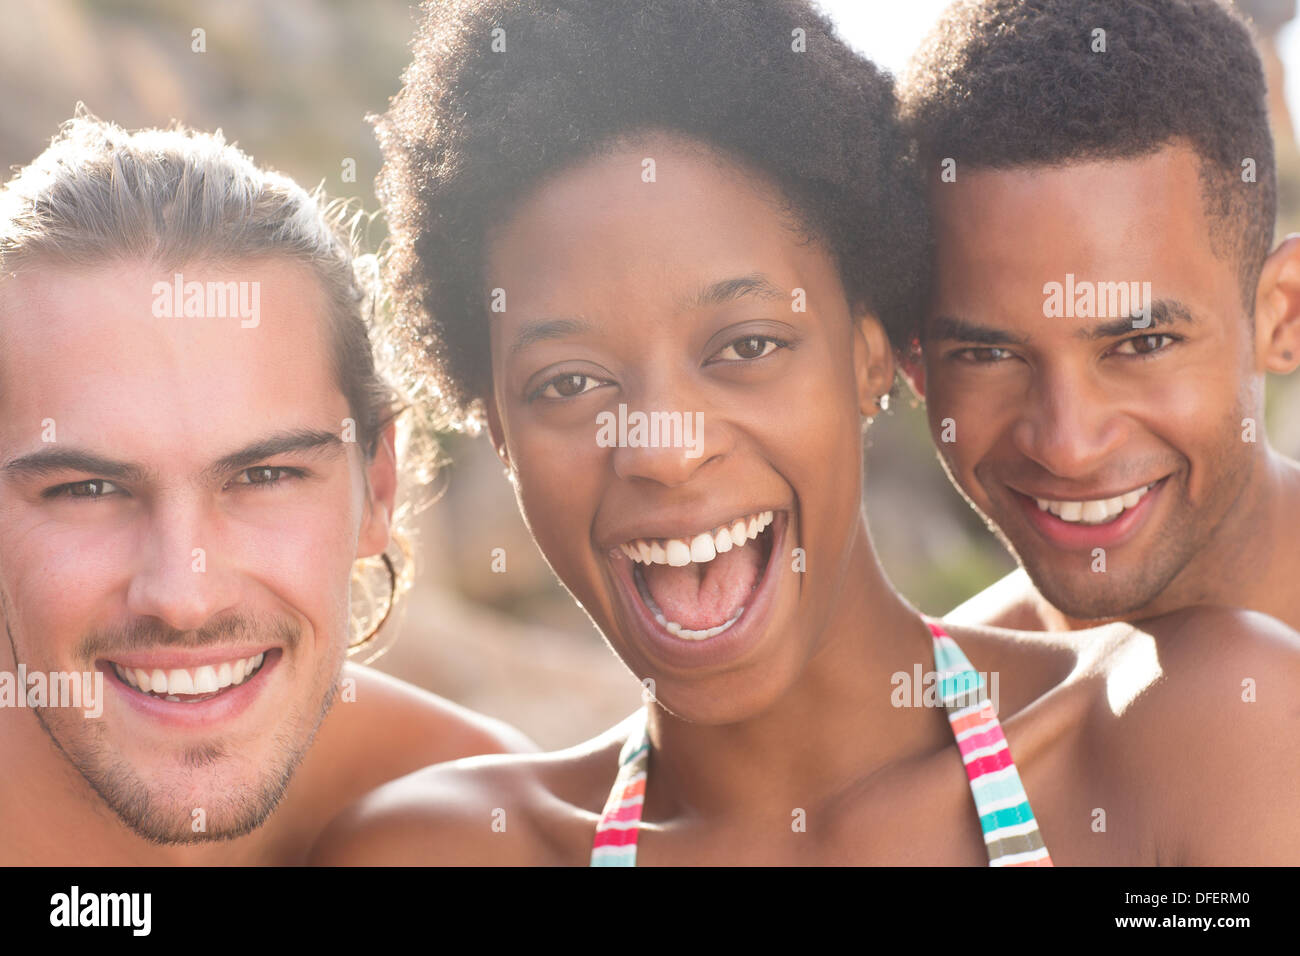 Portrait of smiling friends - Stock Image